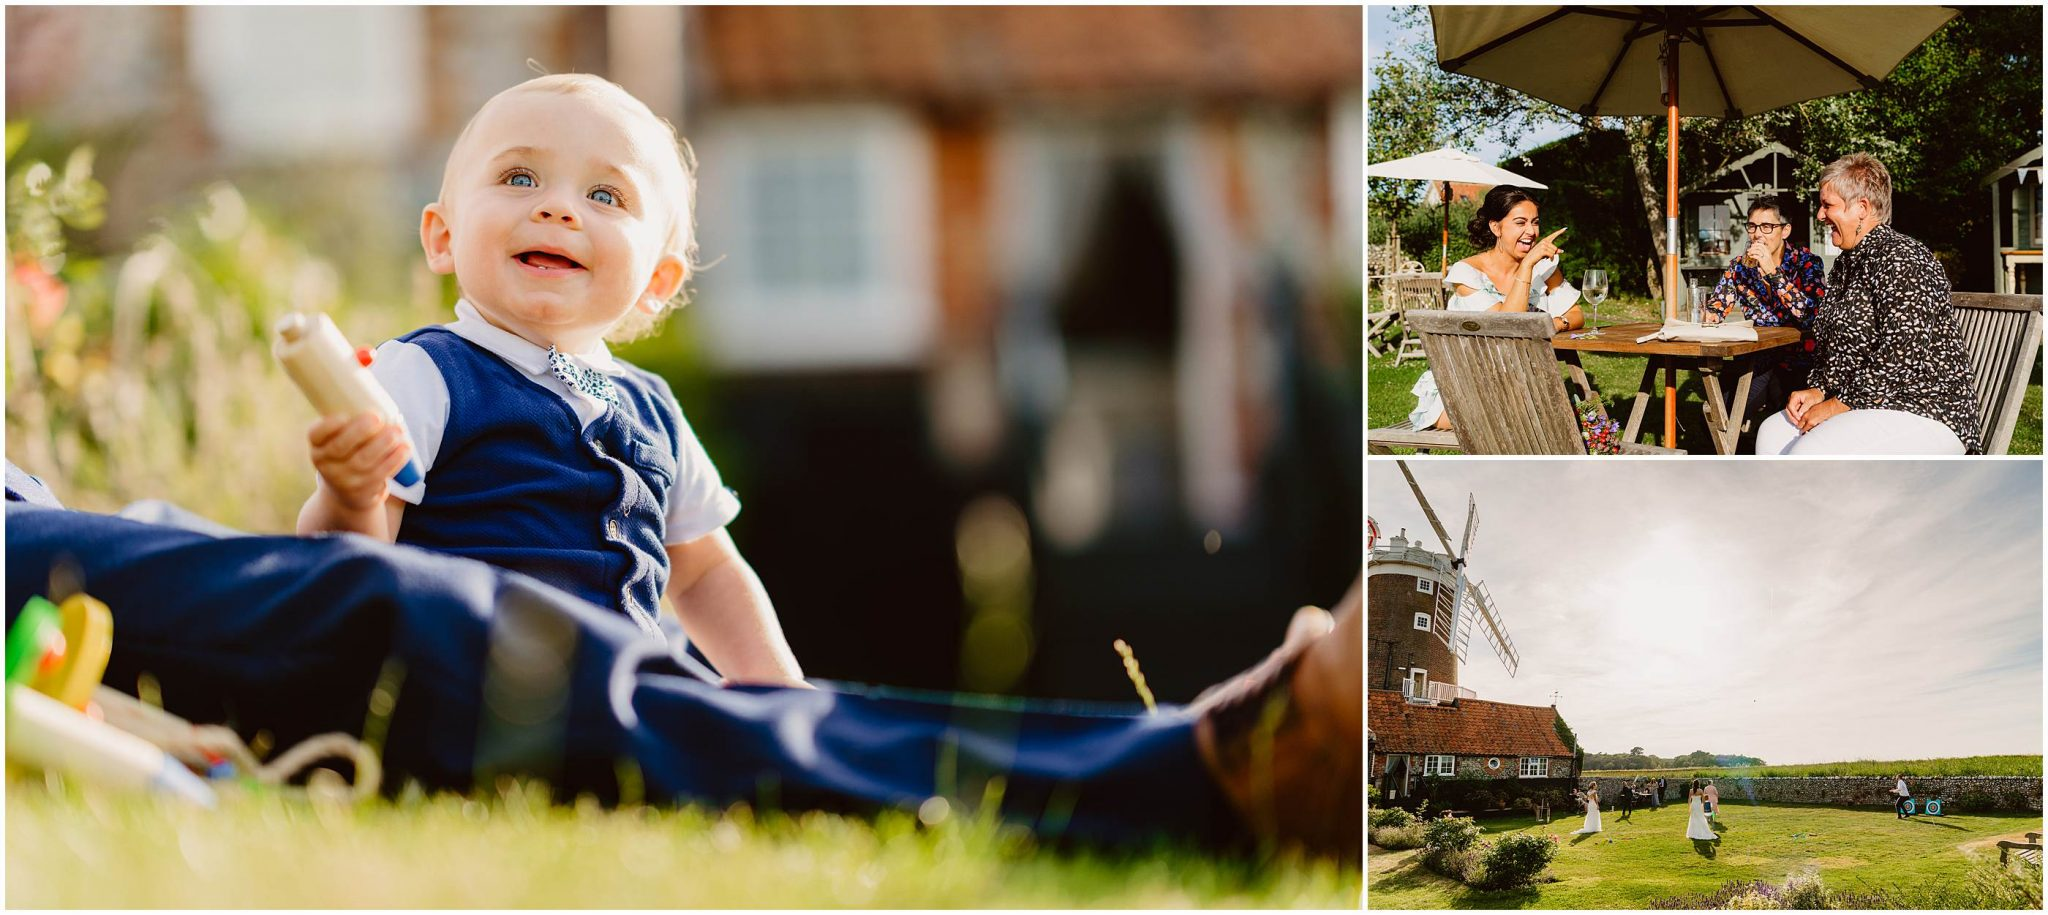 NATALIE AND REBECCA'S CLEY WINDMILL WEDDING - NORFOLK WEDDING PHOTOGRAPHER